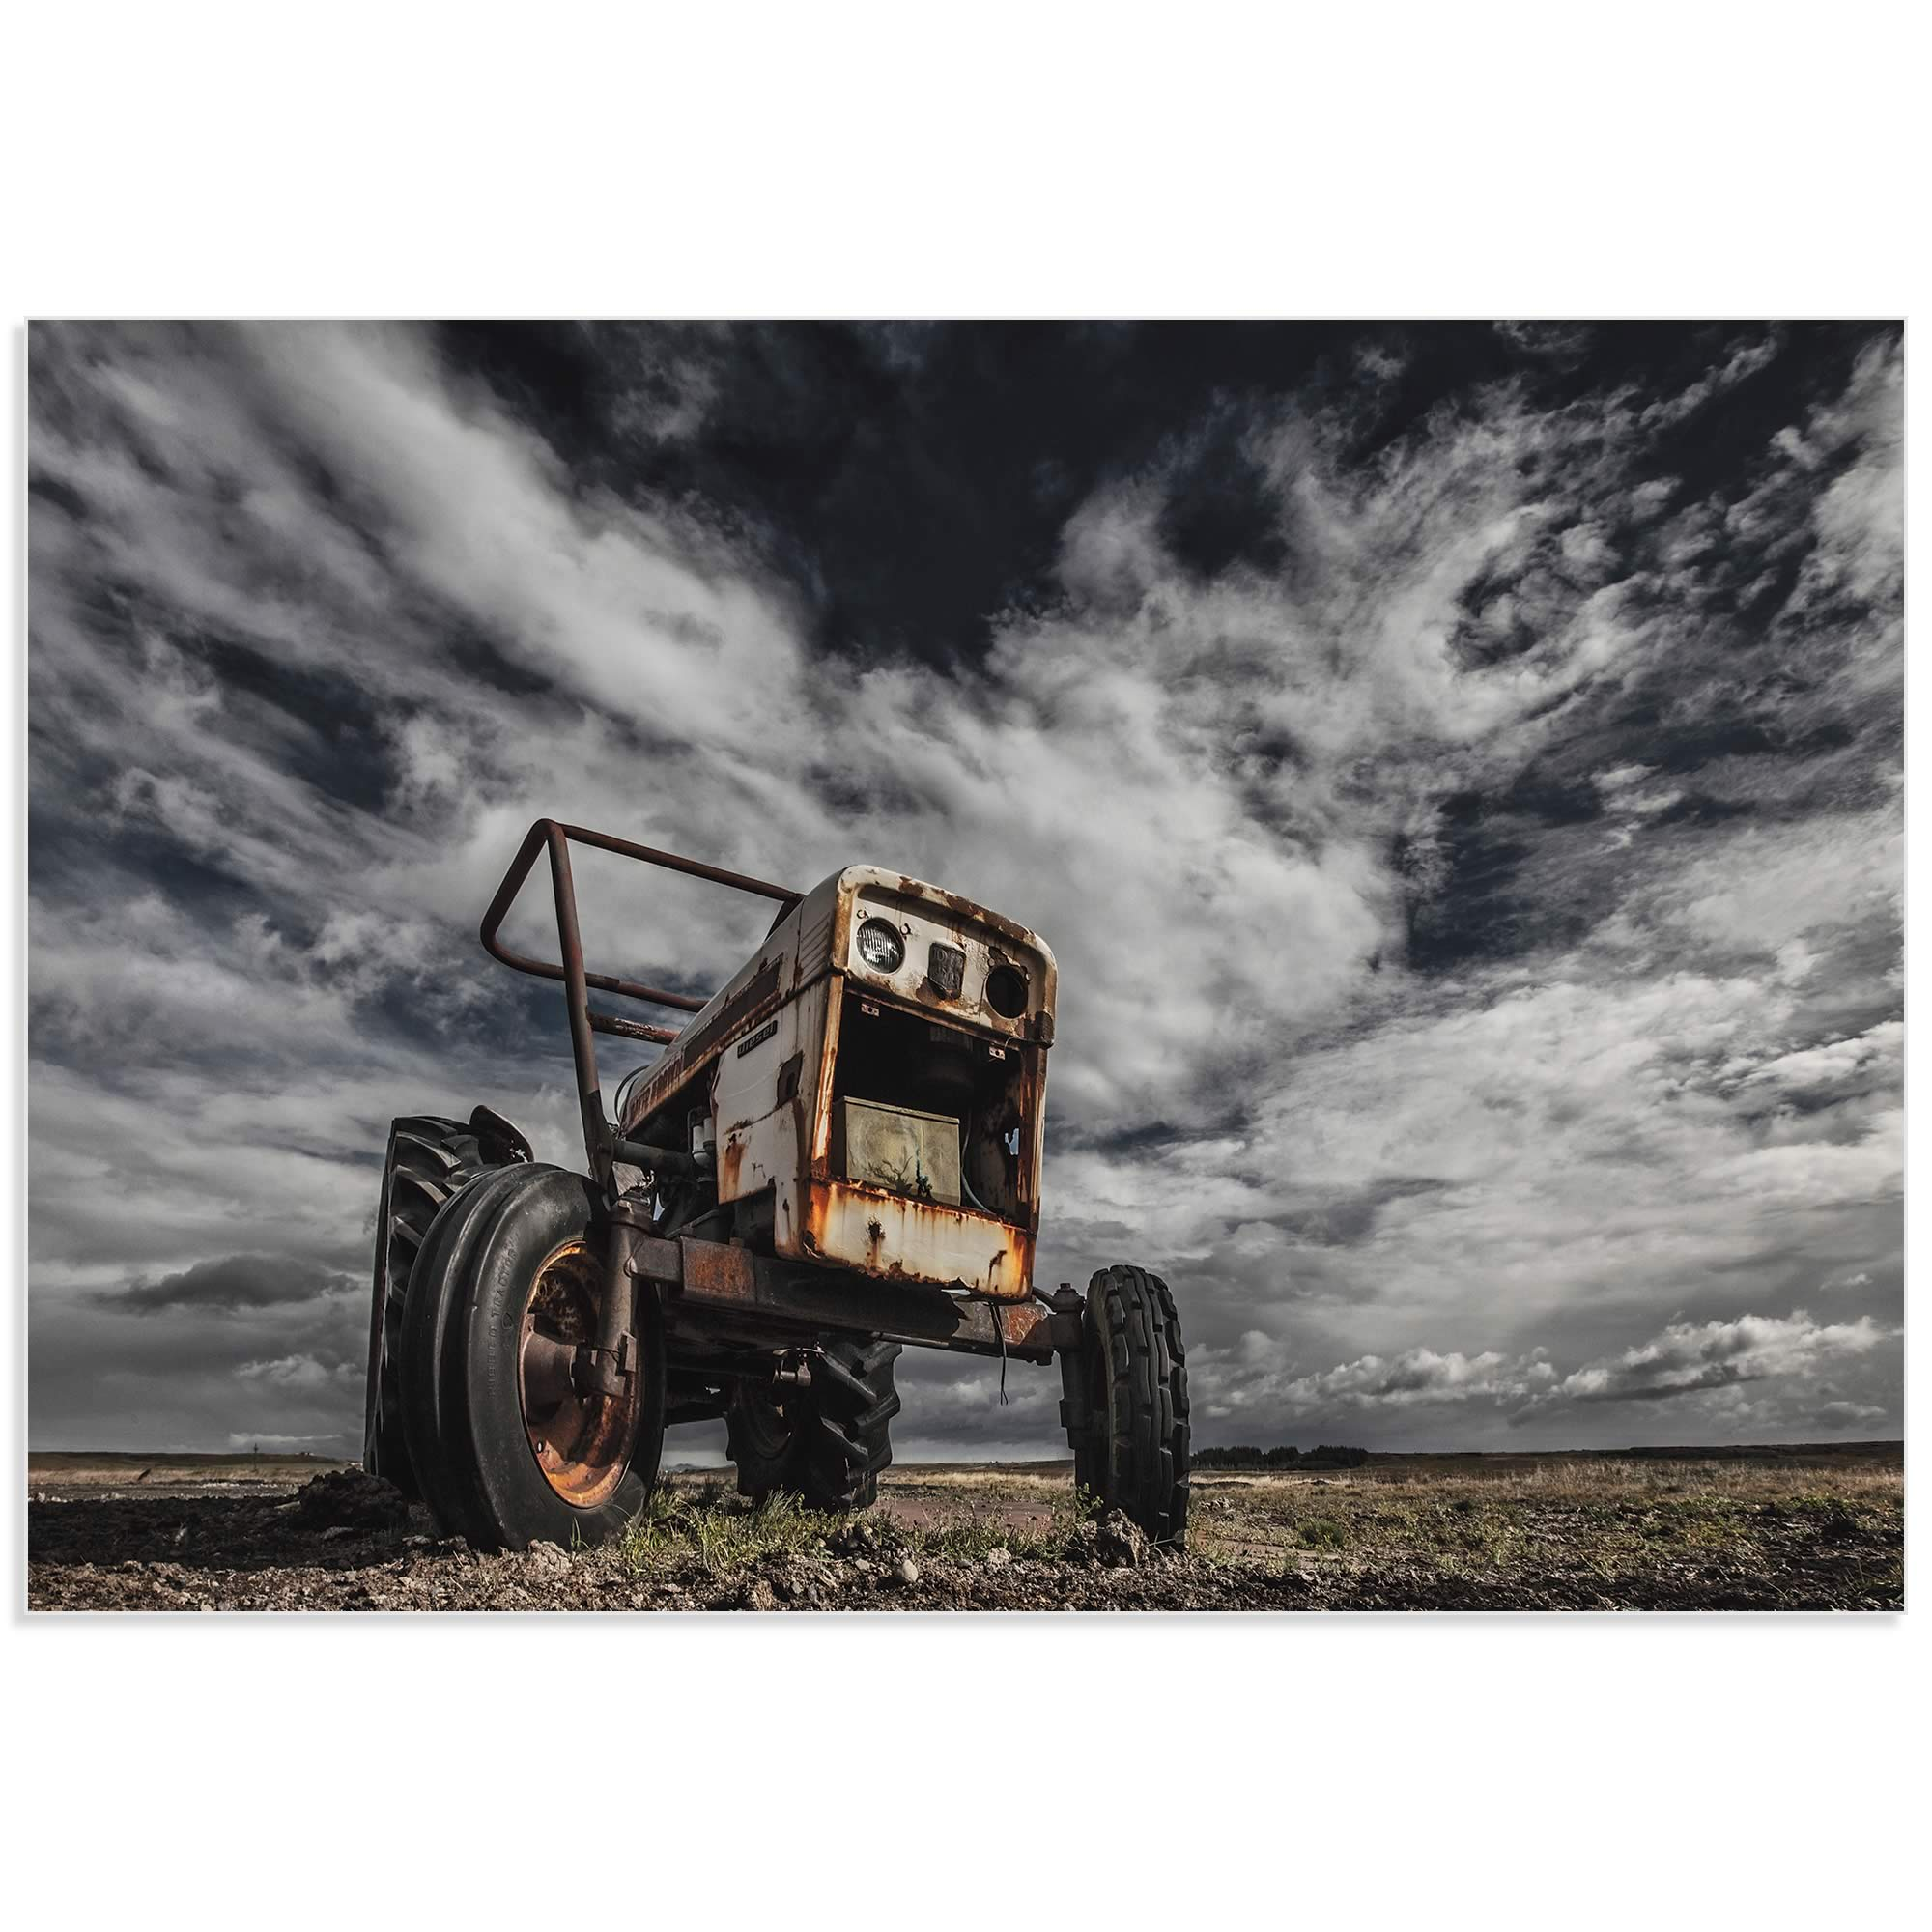 The Tractor Scream by Bragi Ingibergsson - Industrial Art on Metal or Acrylic - Alternate View 2